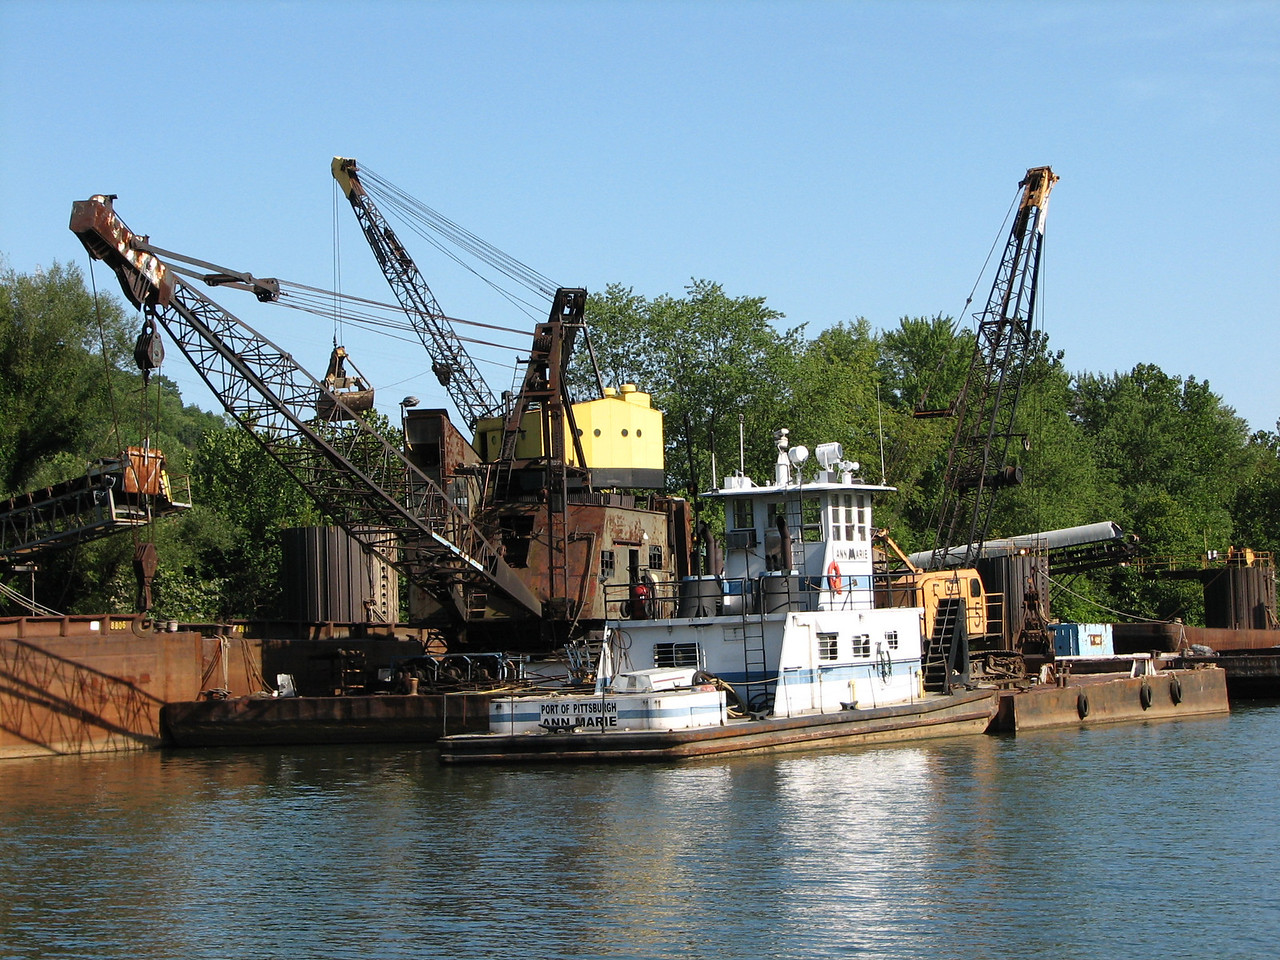 Multiple cranes include clam shell cranes for unloading coal, sand, etc. from barges onto trucks or hoppers.